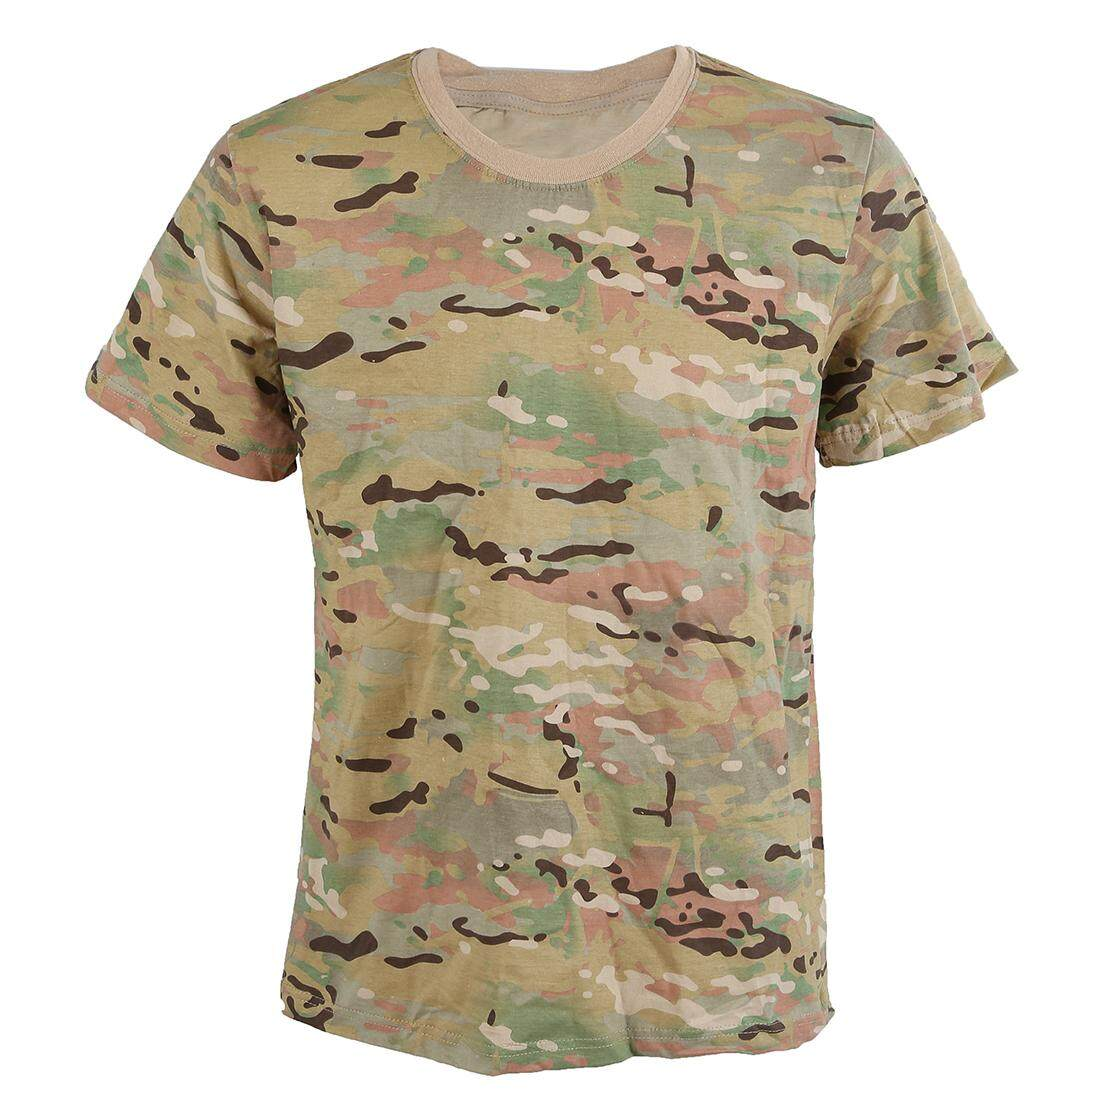 Summer Outdoors Hunting Camouflage T-shirt Men Breathable Army Tactical Combat T Shirt Military Dry Sport Camo Outdoor Camp Tees CP - intl